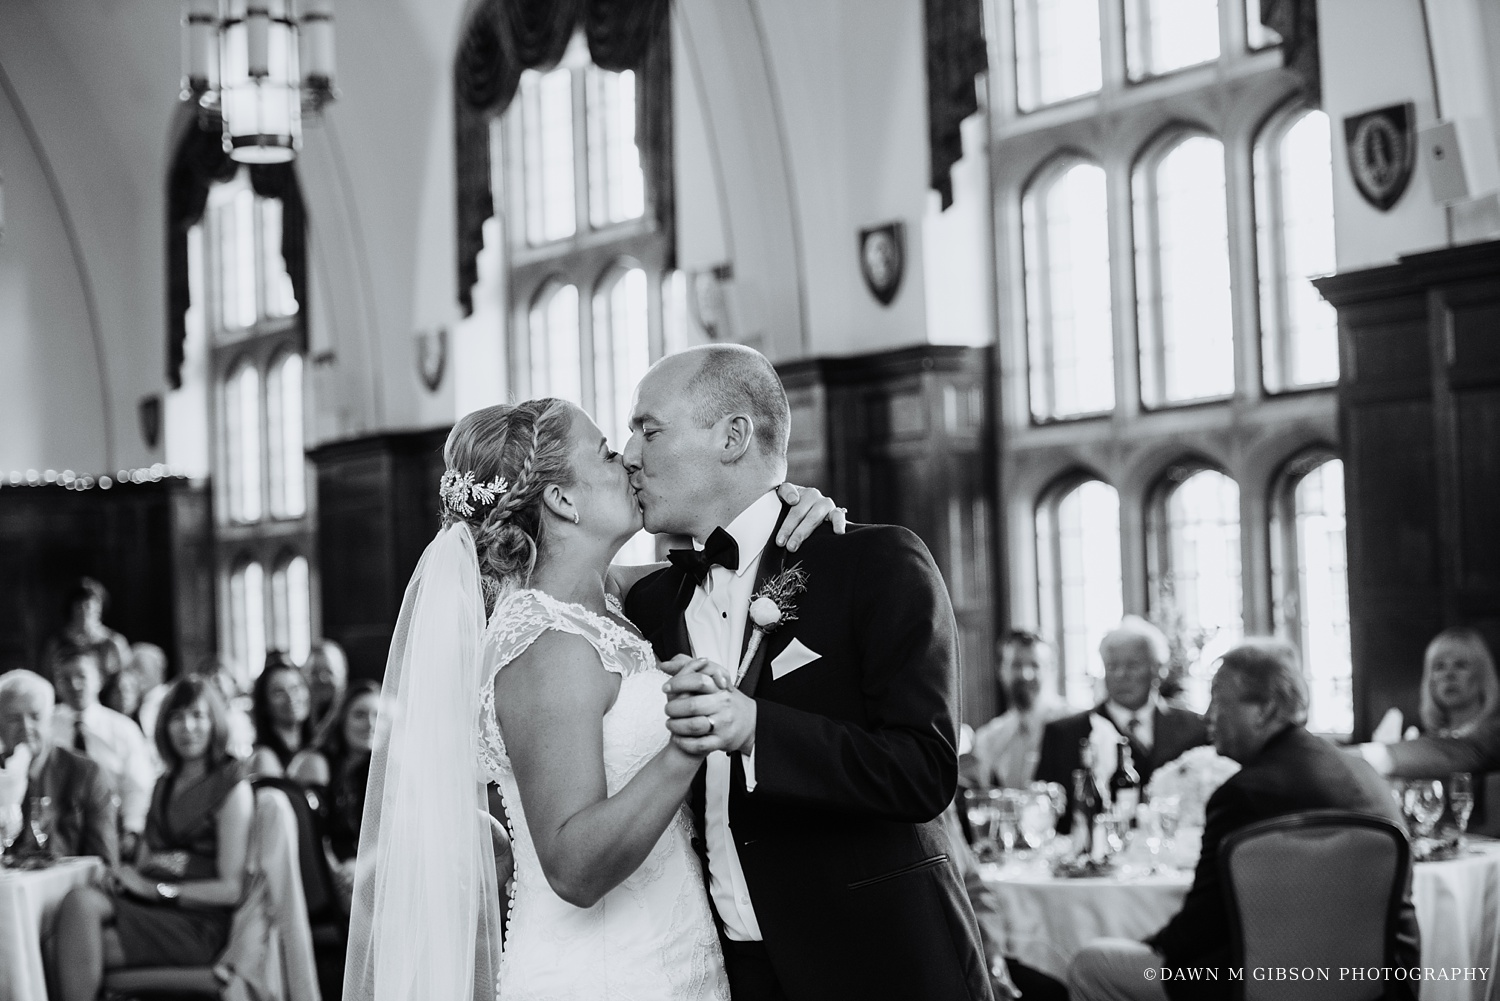 buffalo_wny_rochester_wedding_photographer_dawnmgibsonphotography_strathallan_colgate_rochester_divinity_rochester_wedding_venues_0071.jpg